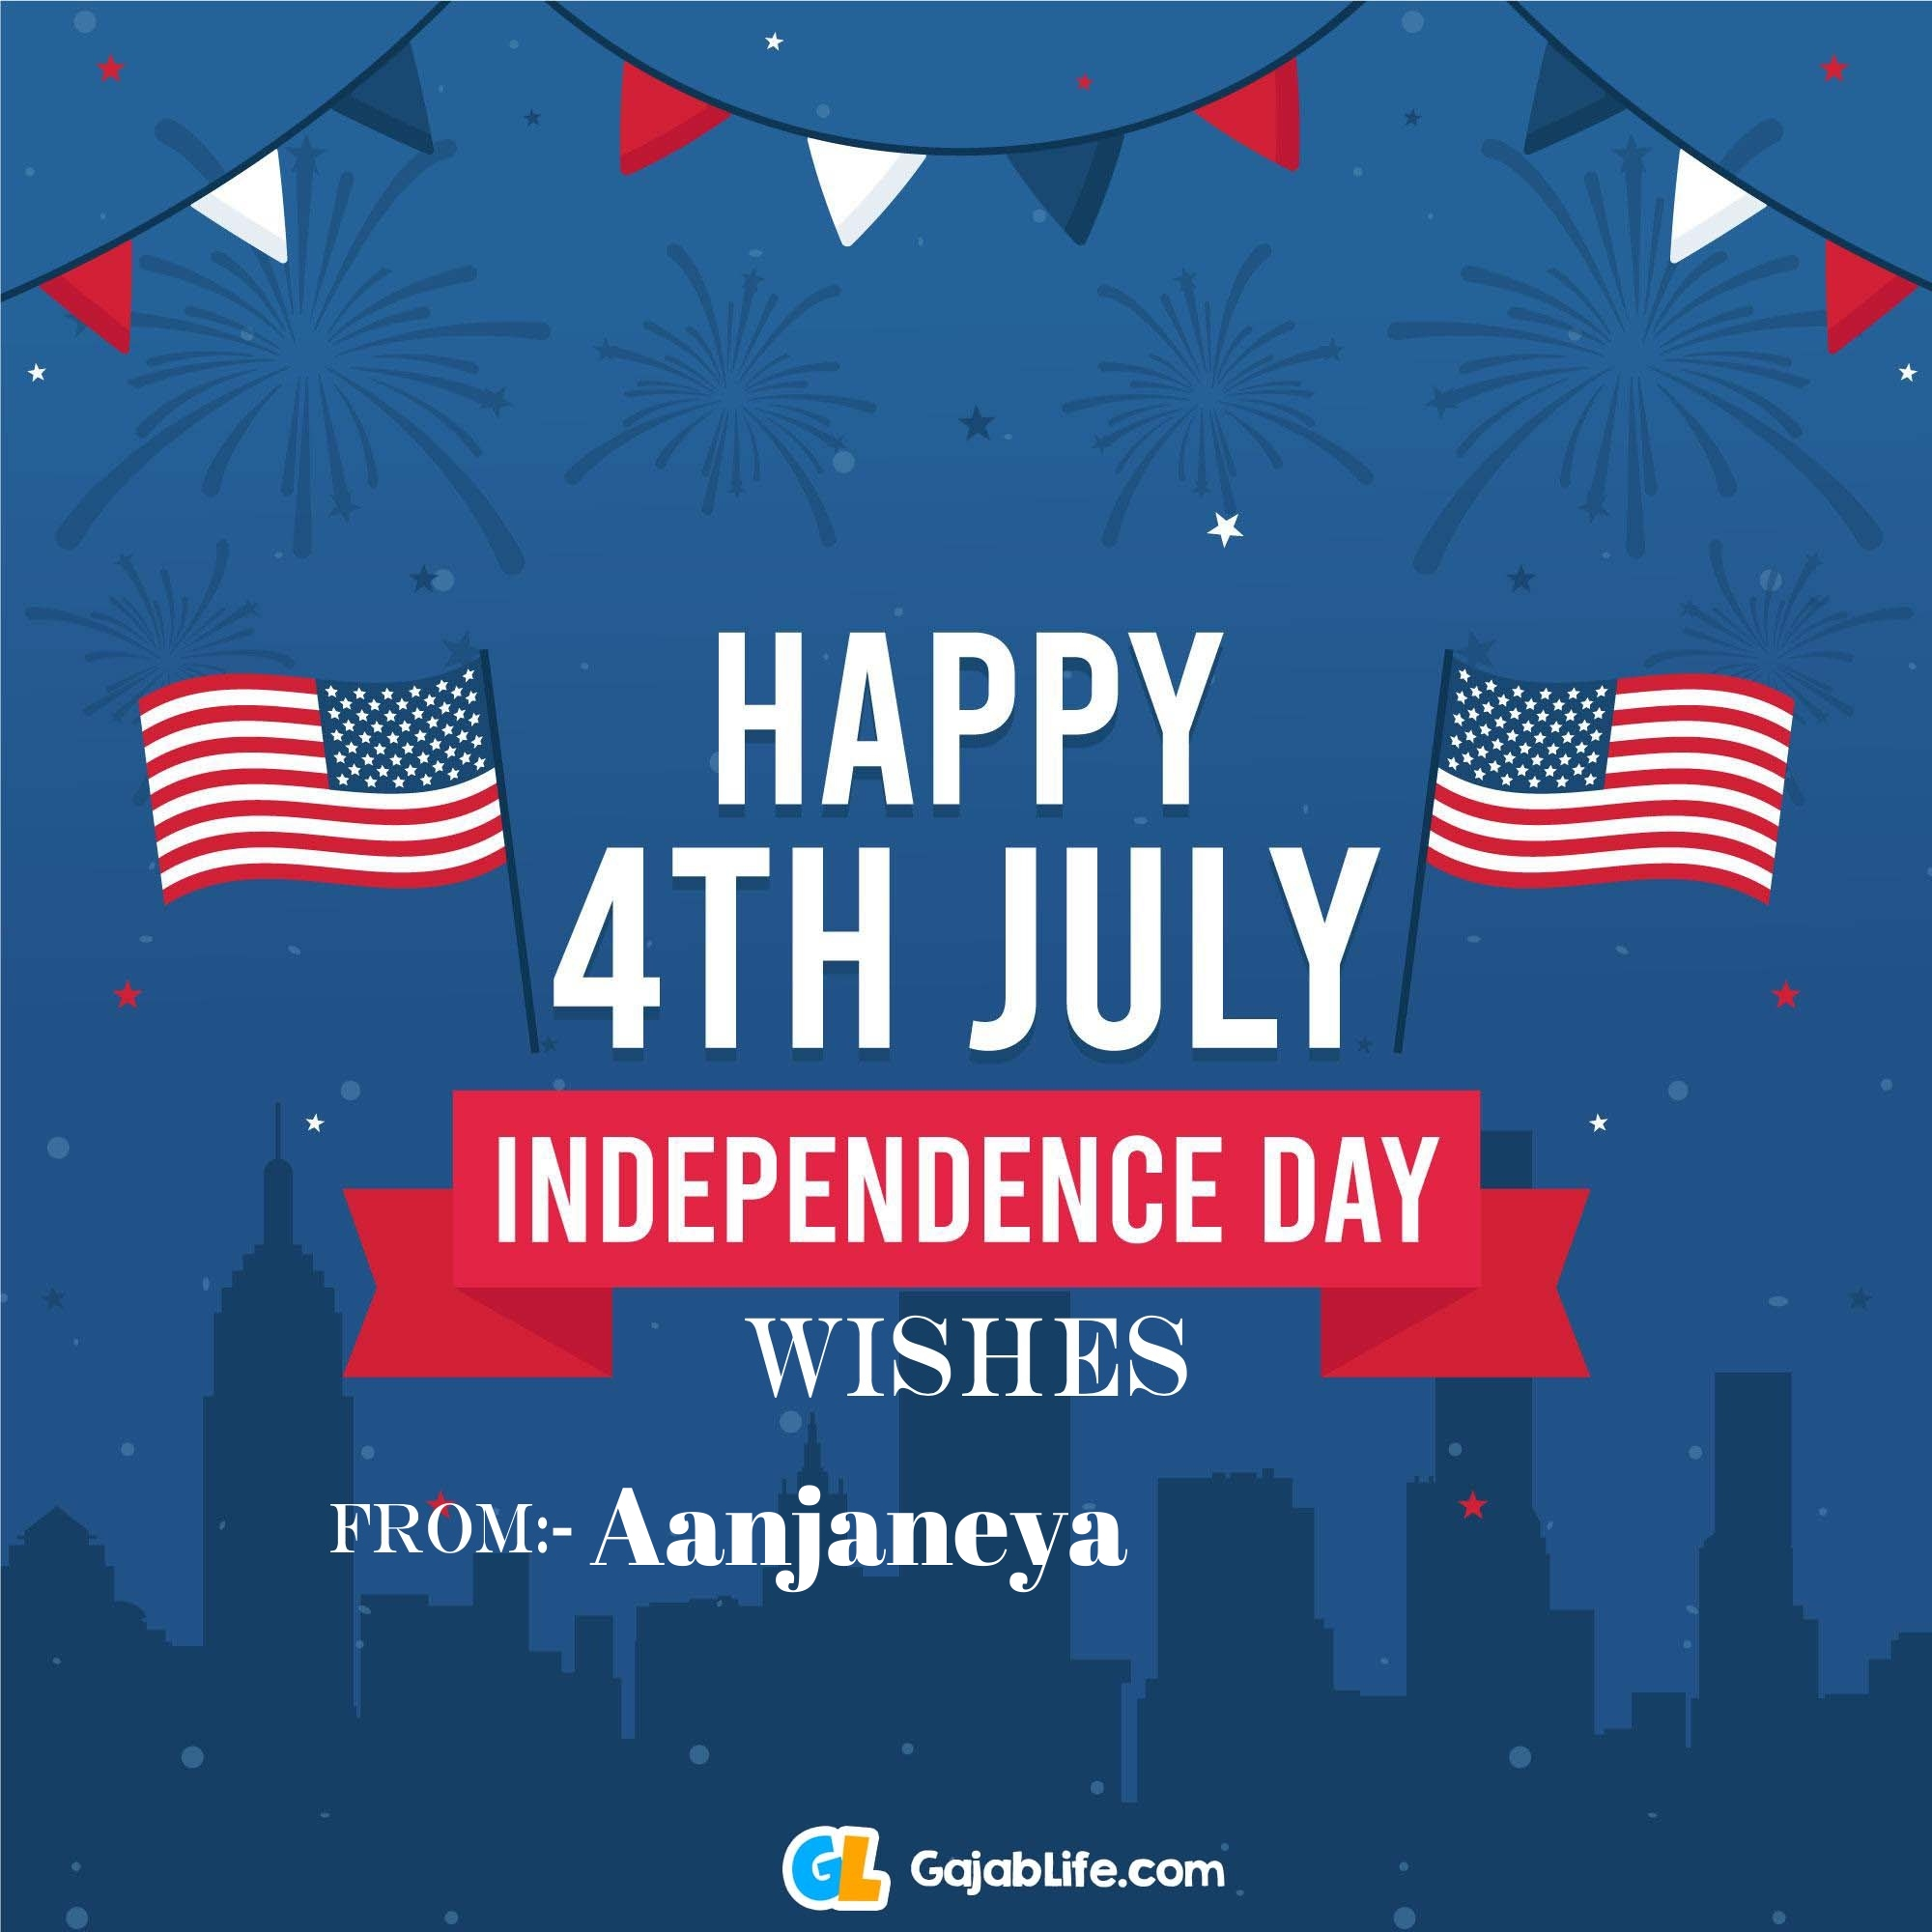 Aanjaneya happy independence day united states of america images